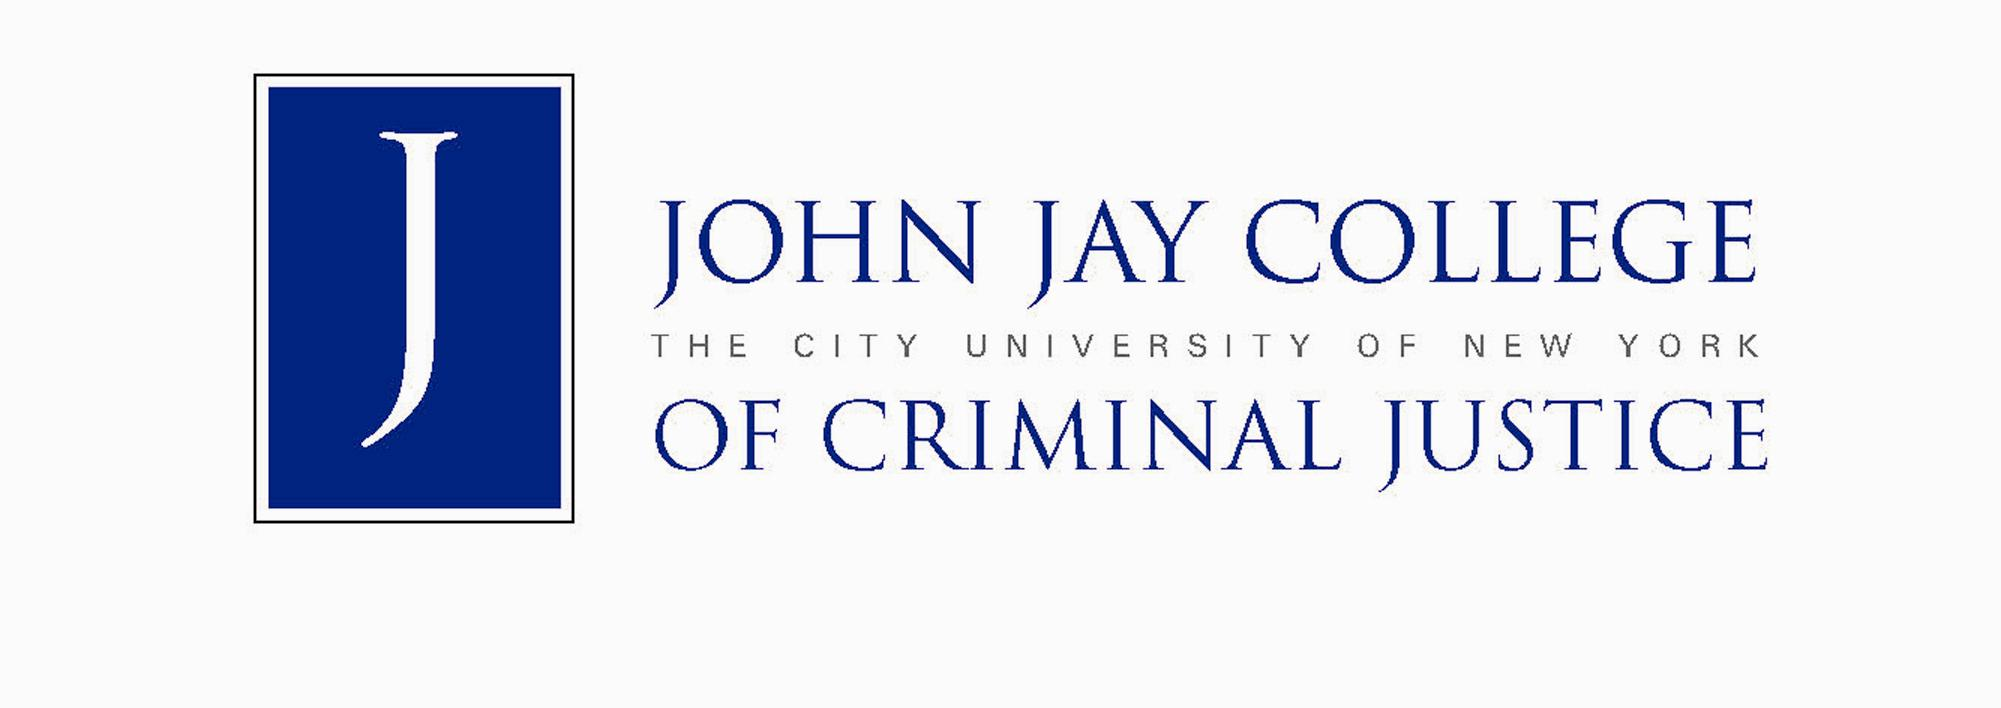 Law and Justice Administration college now john jay